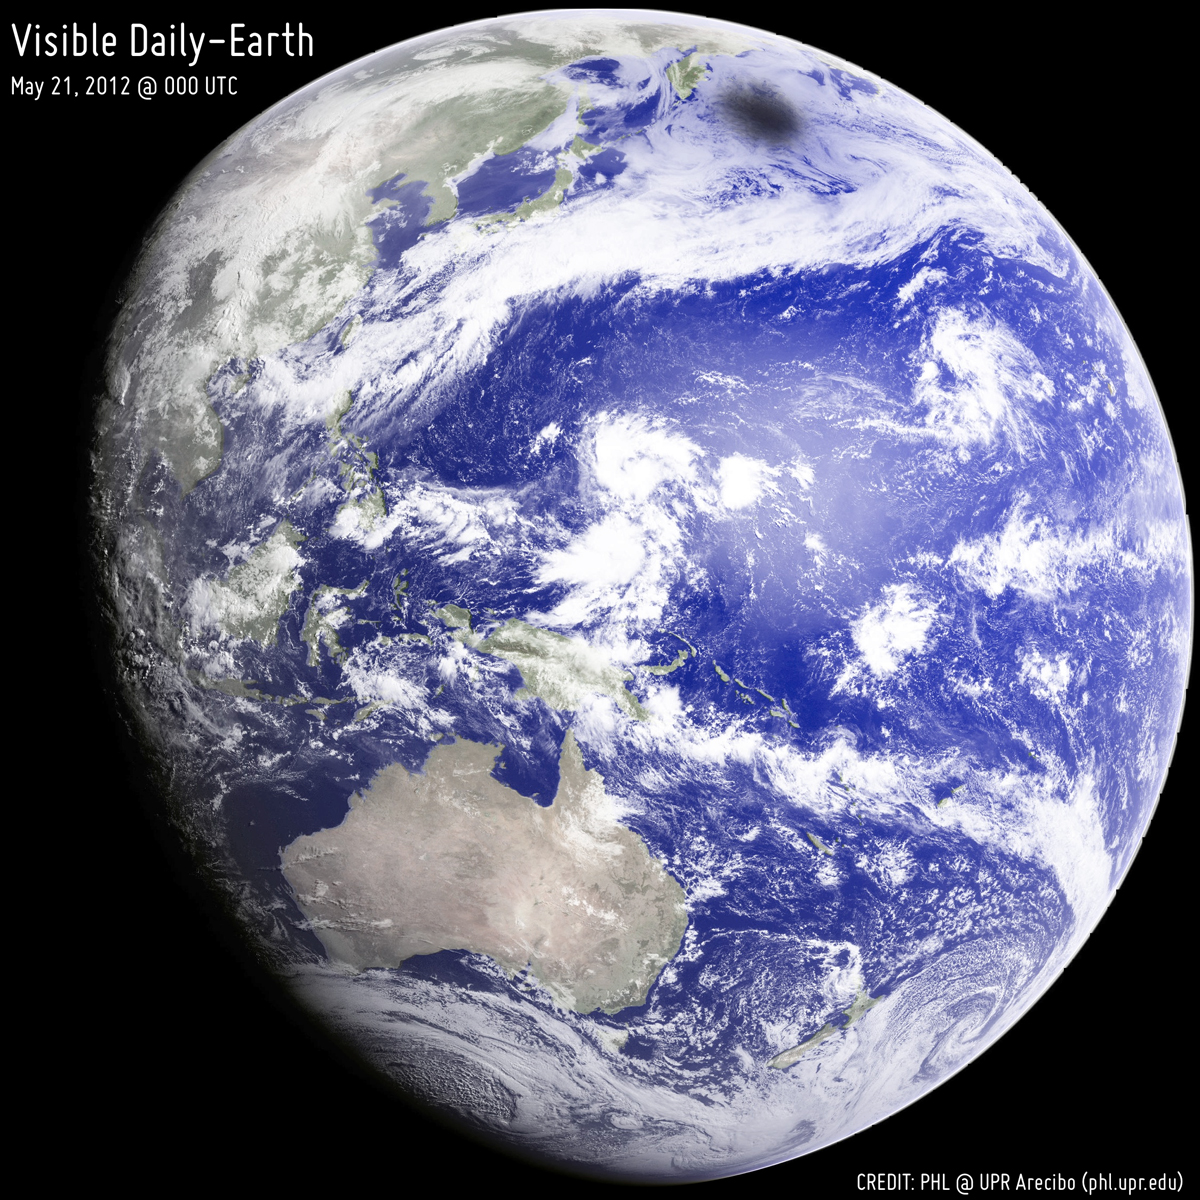 There's a Little Black Spot on the Earth Today